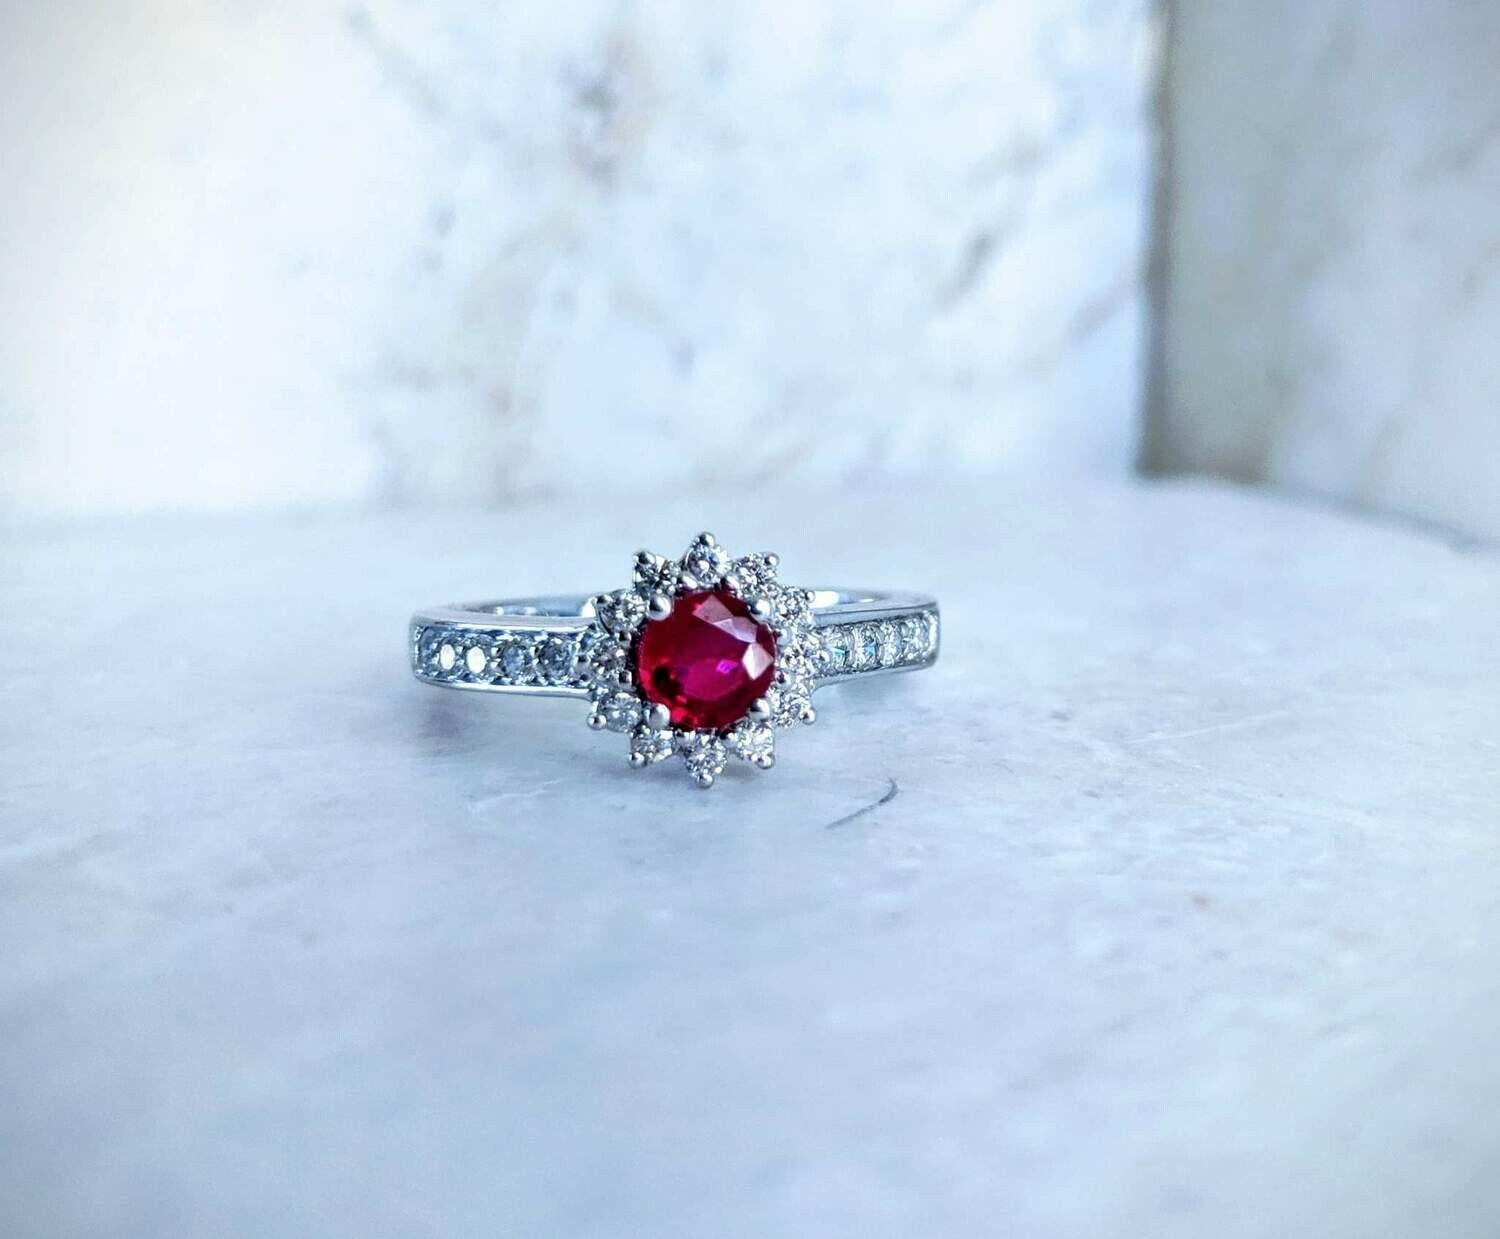 Natural Diamond and Ruby Ring, 0.83 Total Gem Weight